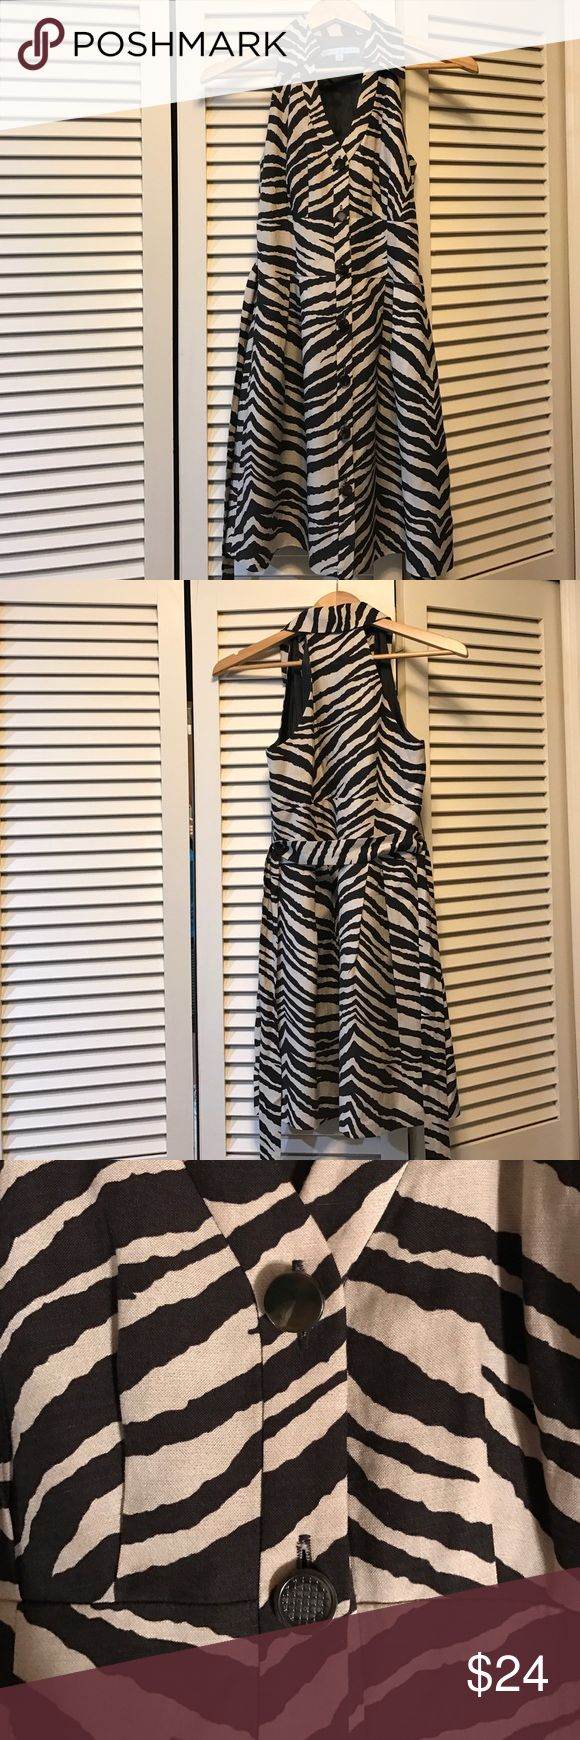 Antonio Melani Size 0 Zebra Print Dress Women's Antonio Melani, size 0, brown and tan zebra print dress. Button up dress, with v neckline, tie waist, and razor back. Missing decorative piece on second button as shown in third picture. ANTONIO MELANI Dresses Midi